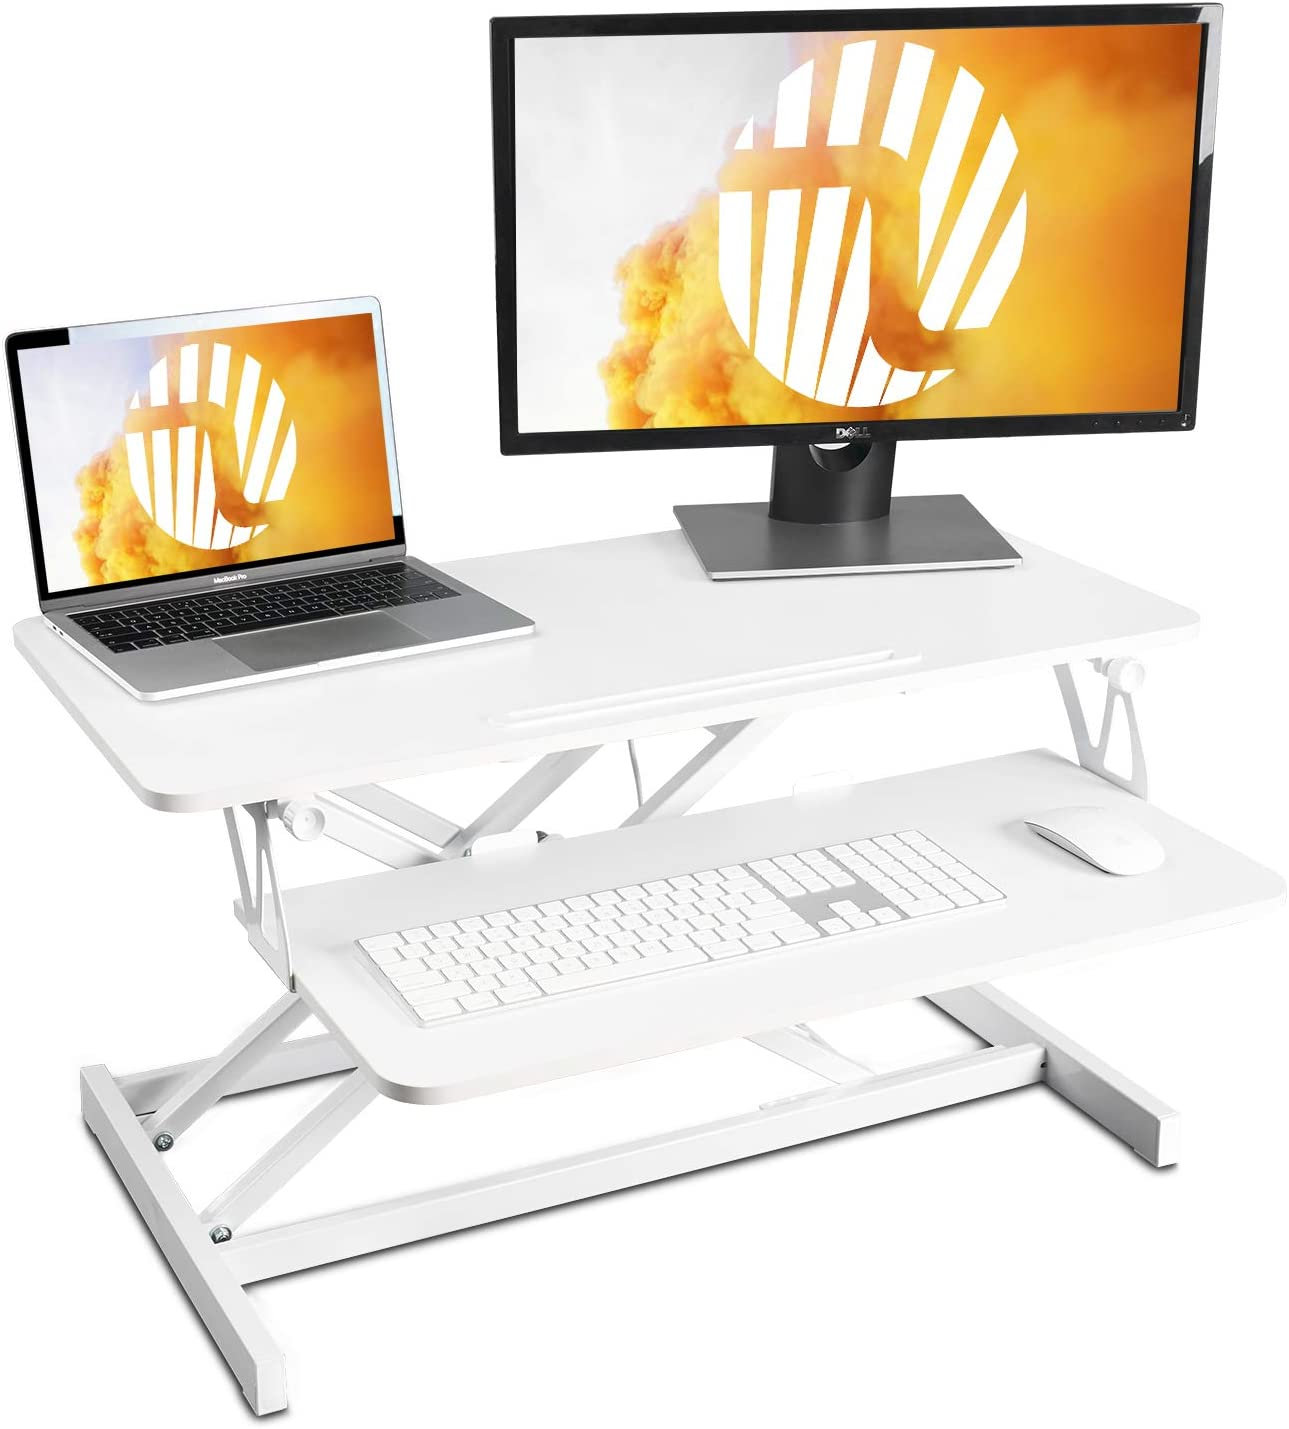 FEZIBO Standing Desk with Height Adjustable – 32 inches White Sit Stand Desk, Ergonomic Tabletop Workstation Riser